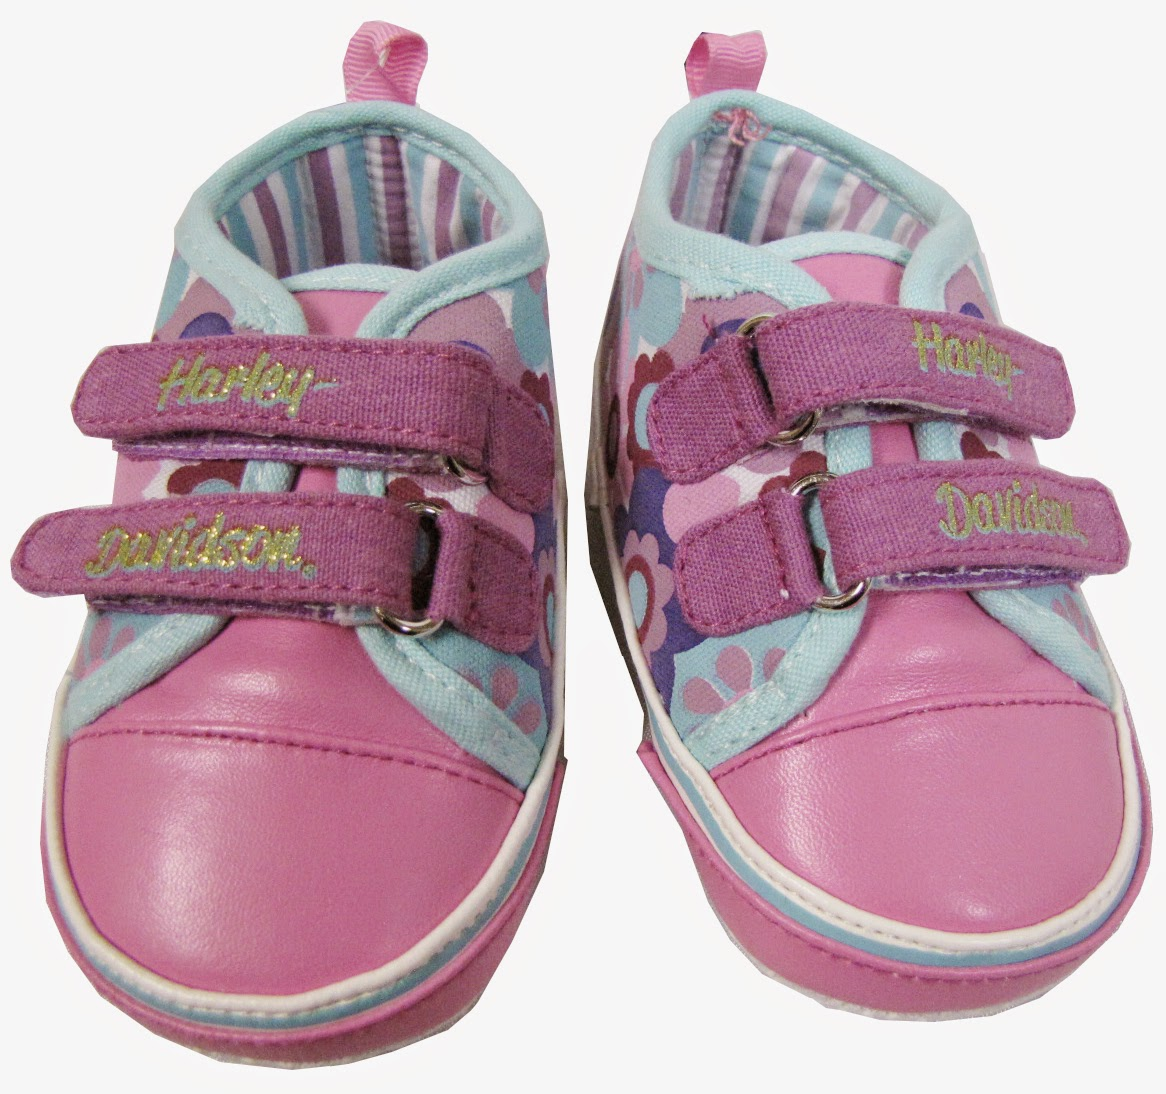 http://www.adventureharley.com/harley-davidson-girls-floral-crib-shoes